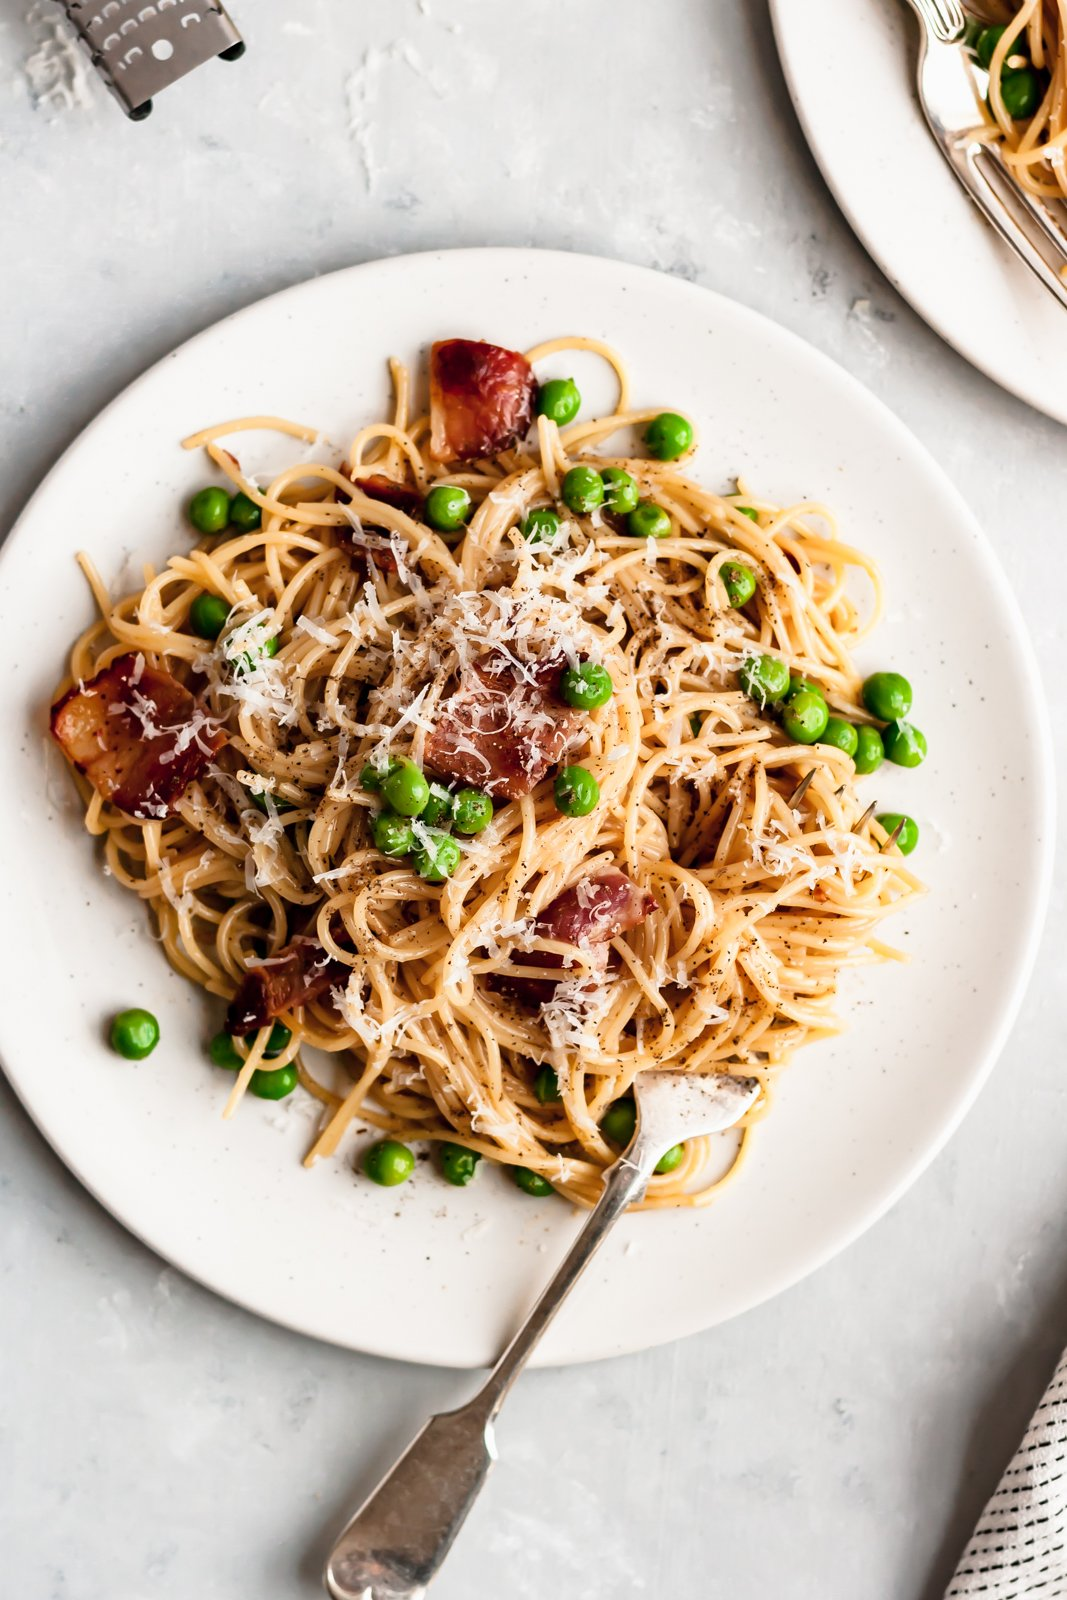 healthy pasta carbonara on a plate with a fork